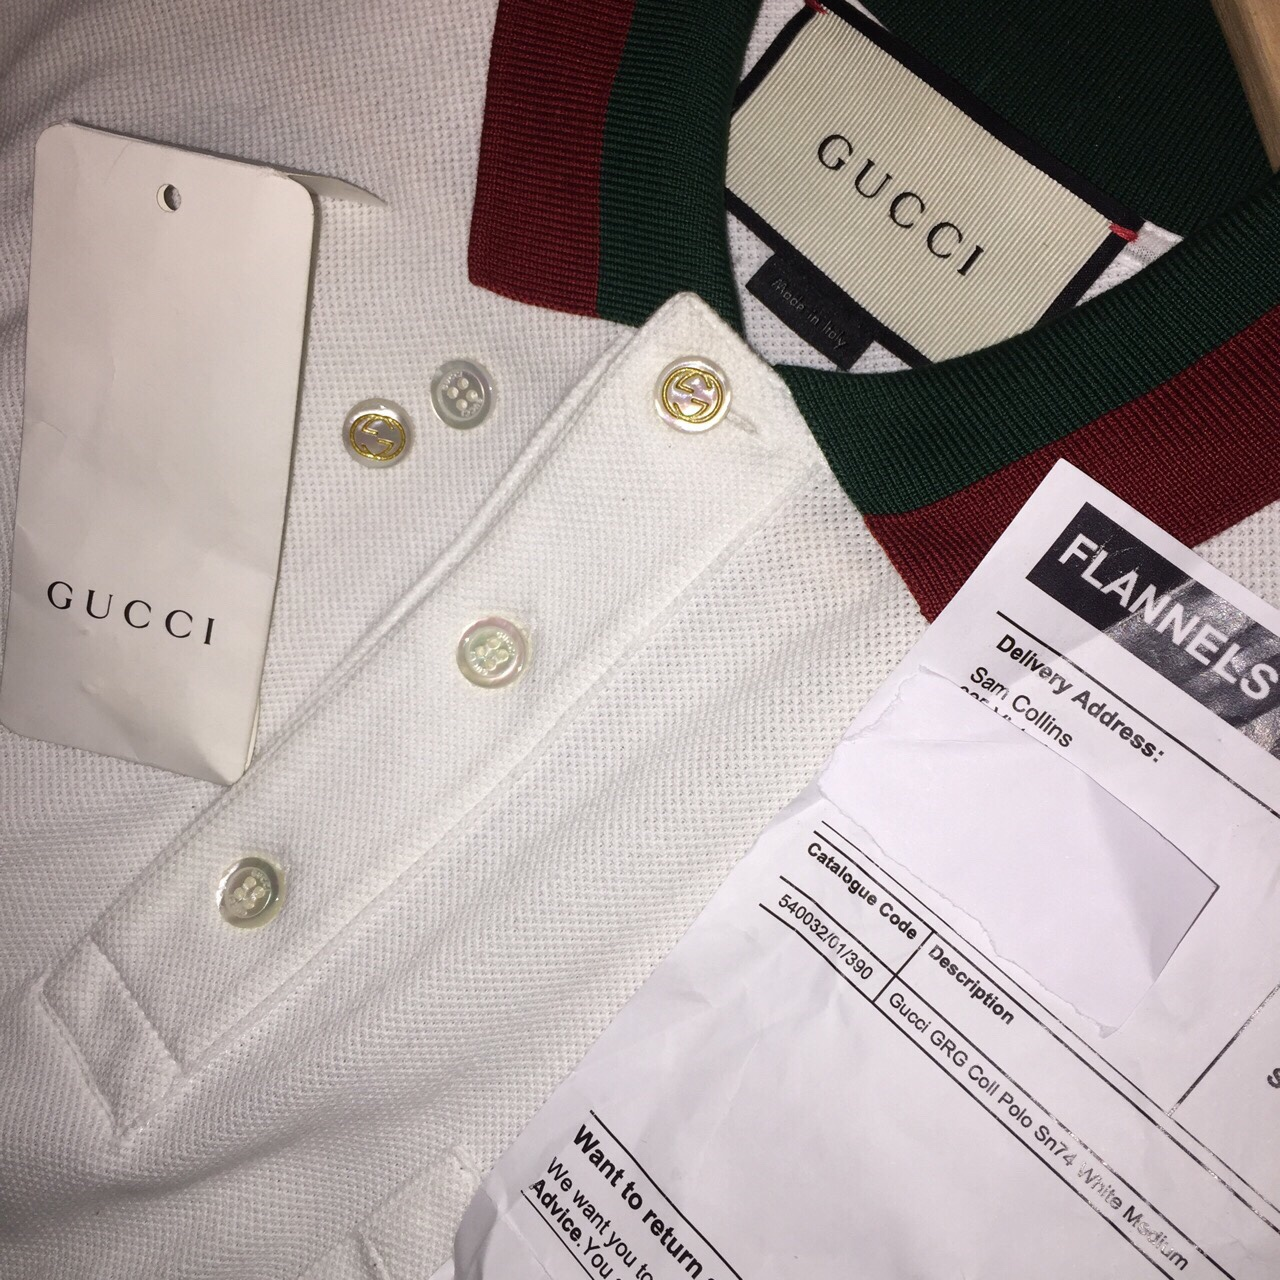 f96d44cca @samcollins2wavey. last year. Manchester, UK. Gucci White Polo Shirt with  green and red web collar.